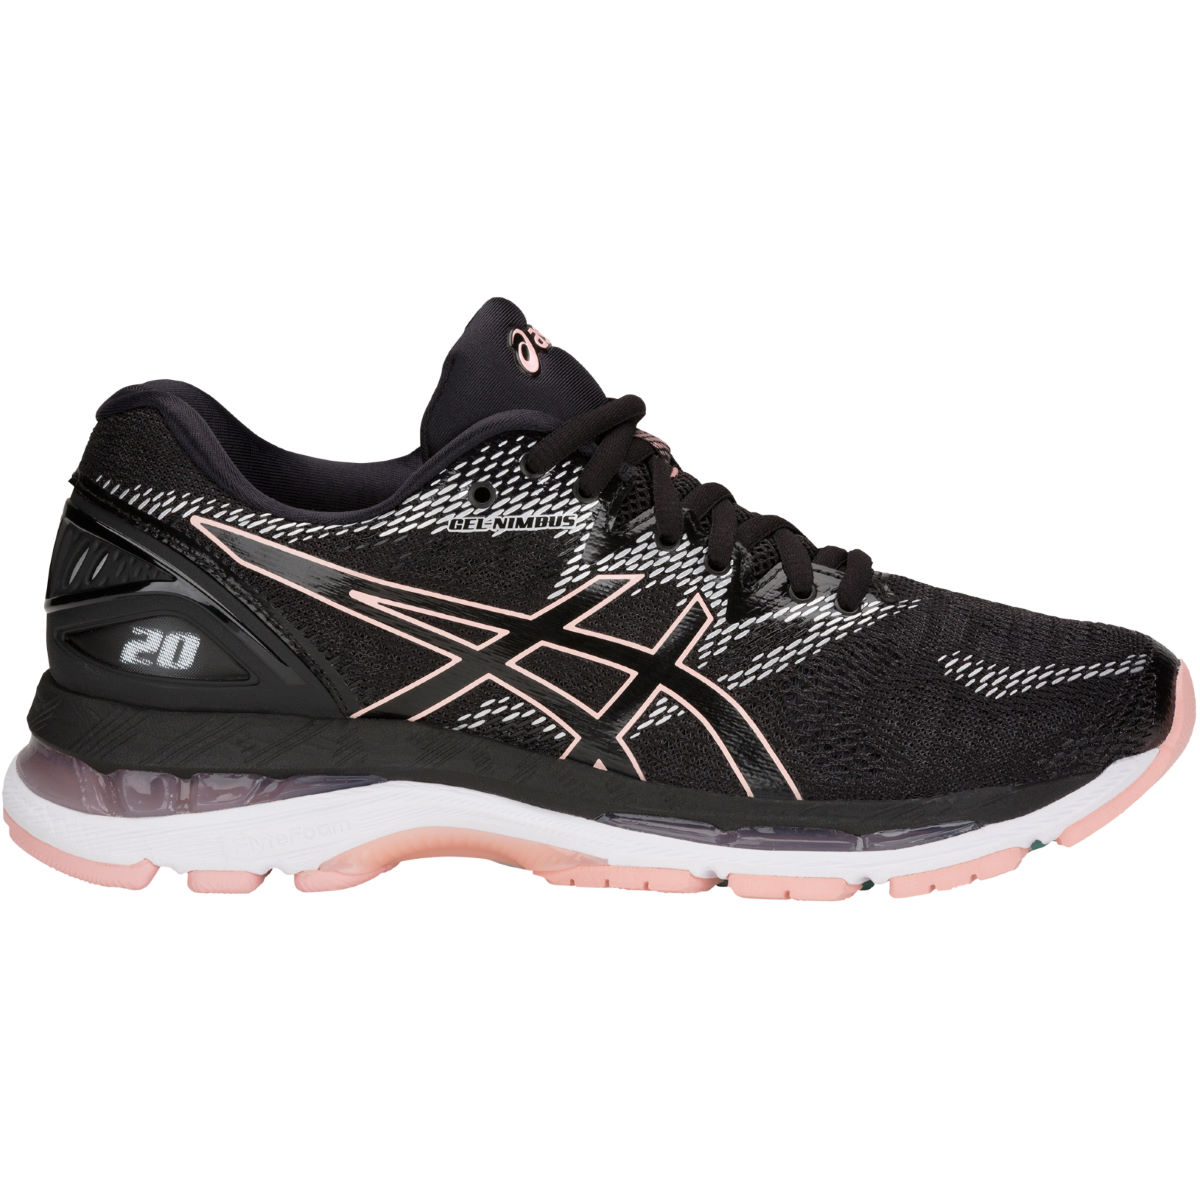 Chaussures Femme Asics Gel-Nimbus 20 - UK 5 Black/Frosted Rose